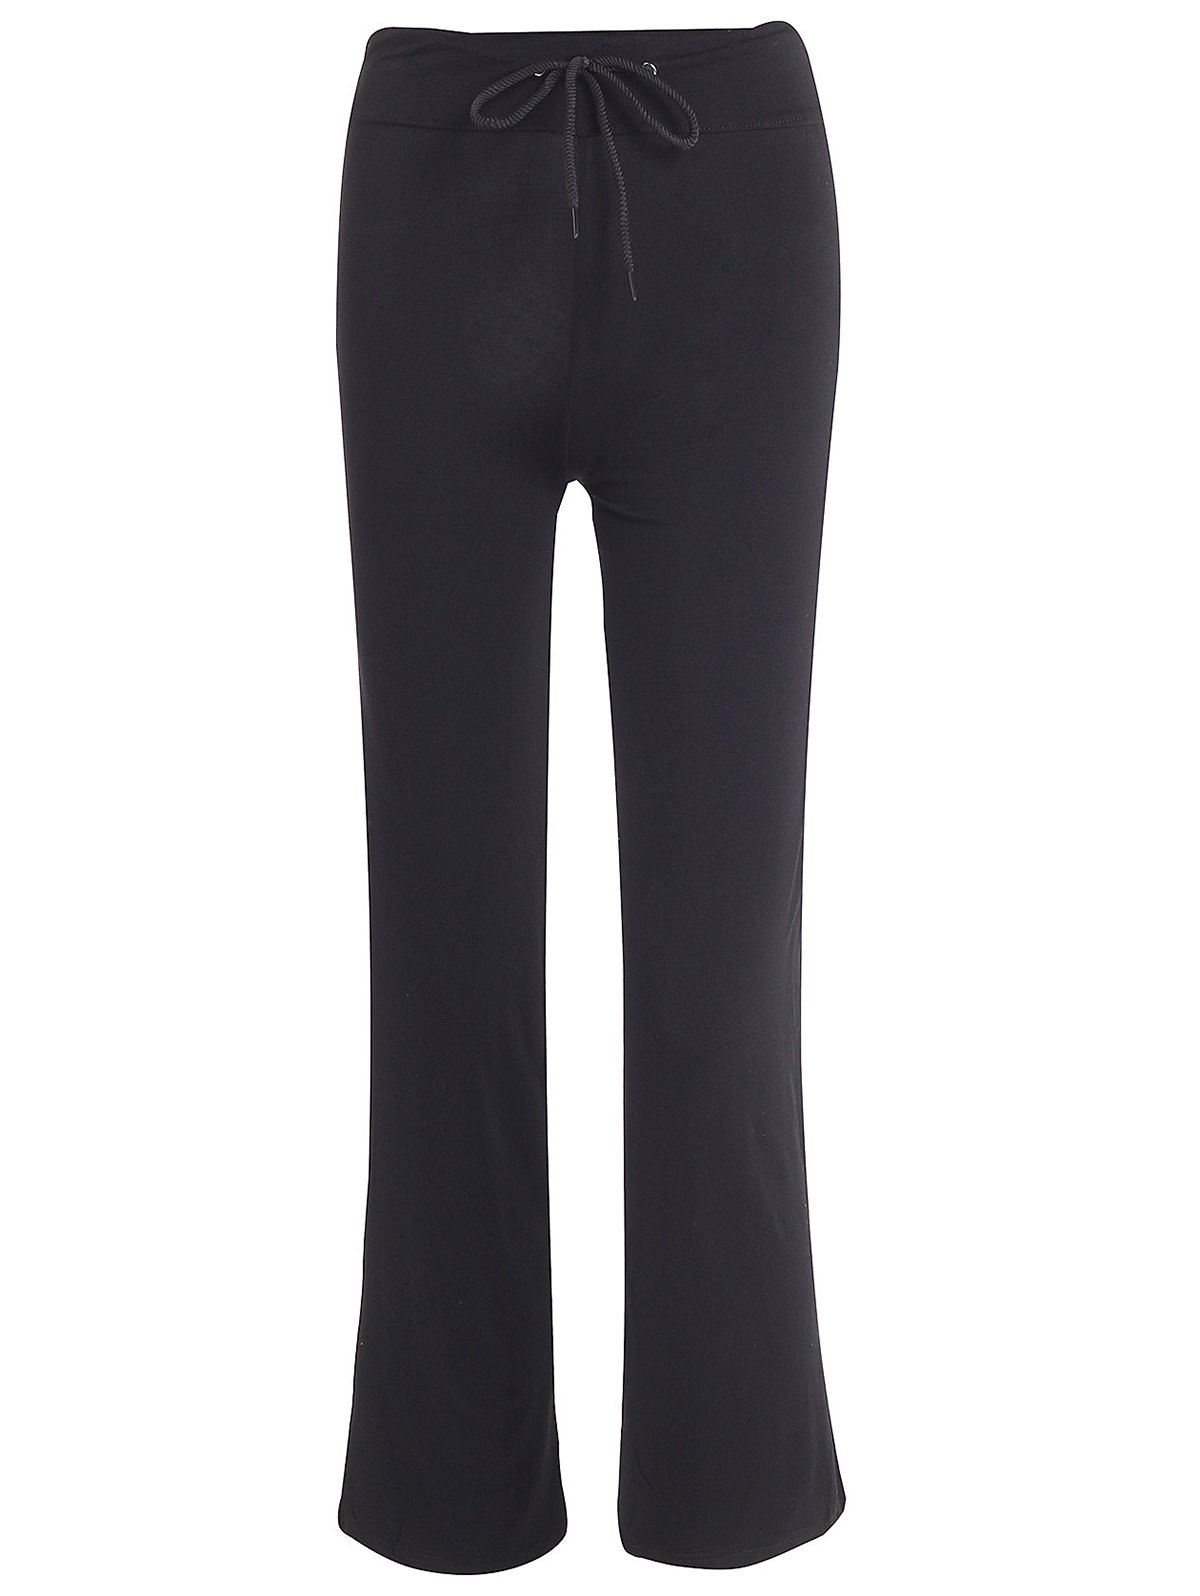 Stylish Mid-Waisted Drawstring Solid Color Women's Yoga Pants - BLACK 2XL